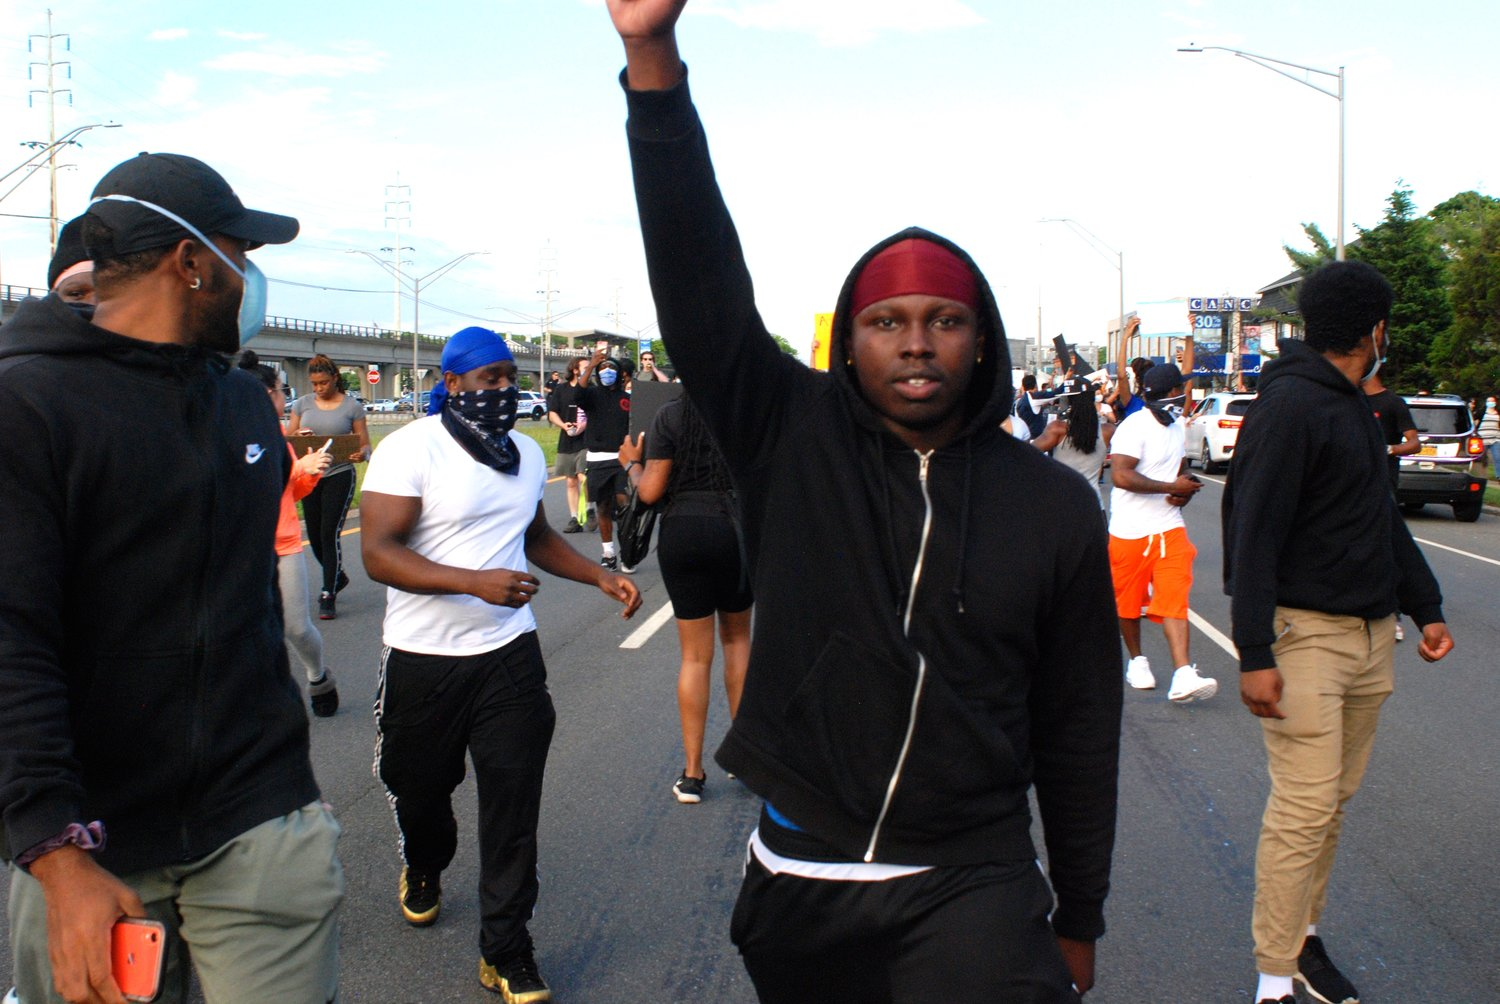 Many demonstrators marched with their arms held high.